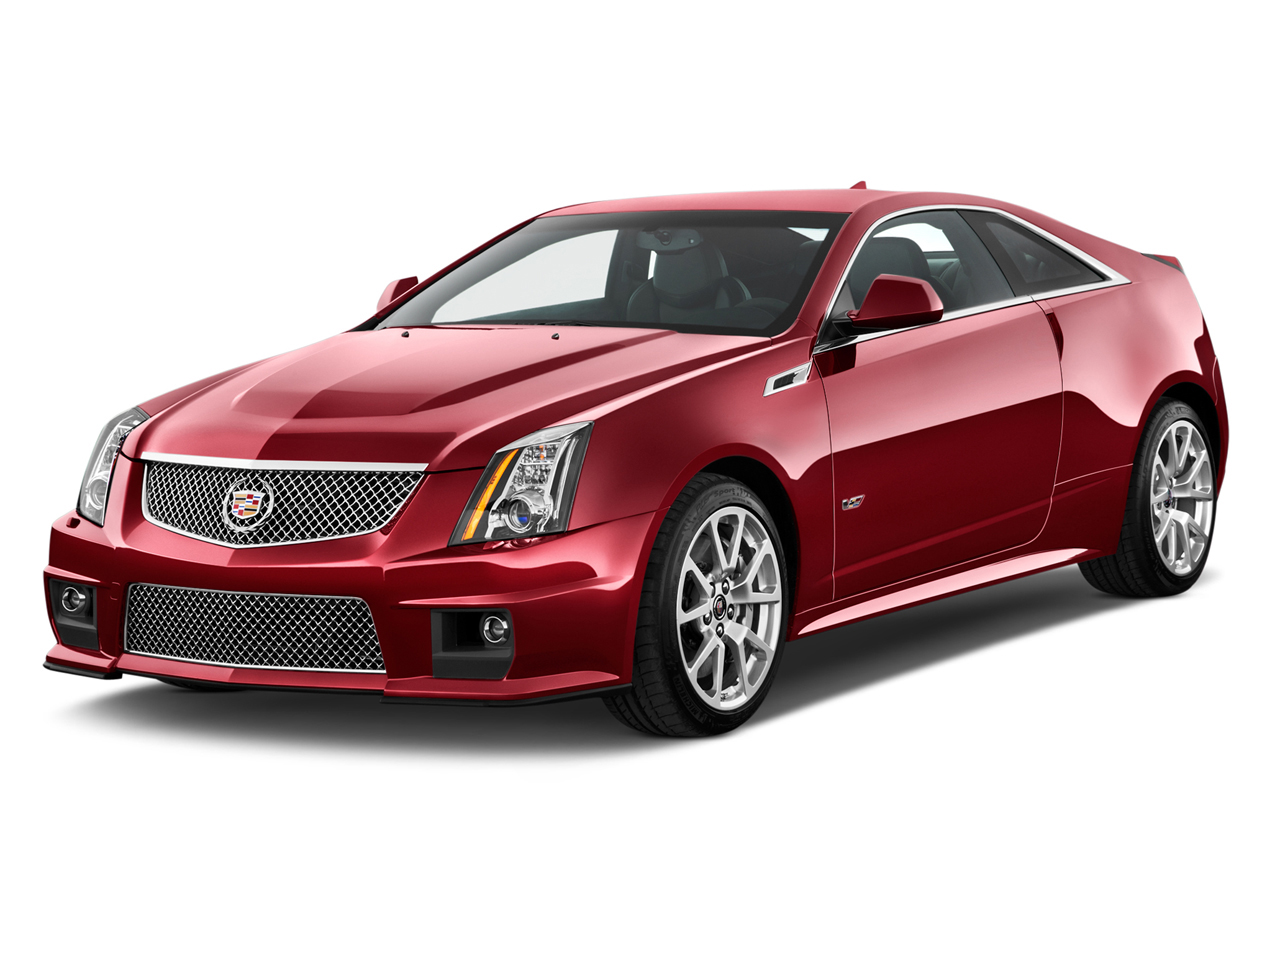 2012 Cadillac Cts V Review Ratings Specs Prices And